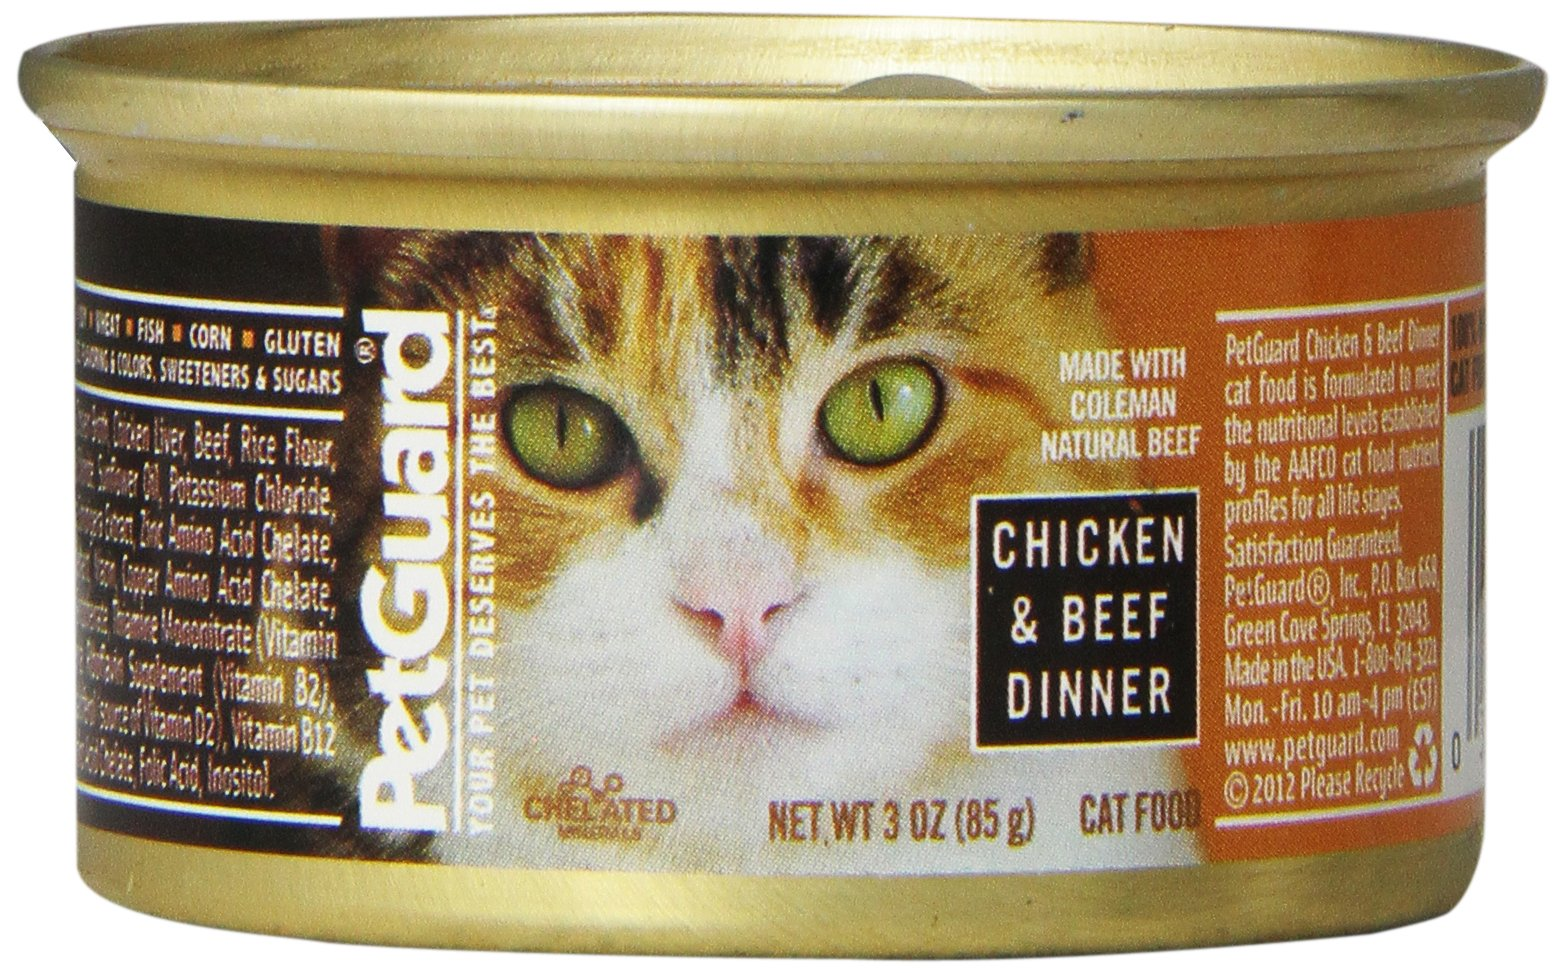 PetGuard Chicken & Beef Dinner